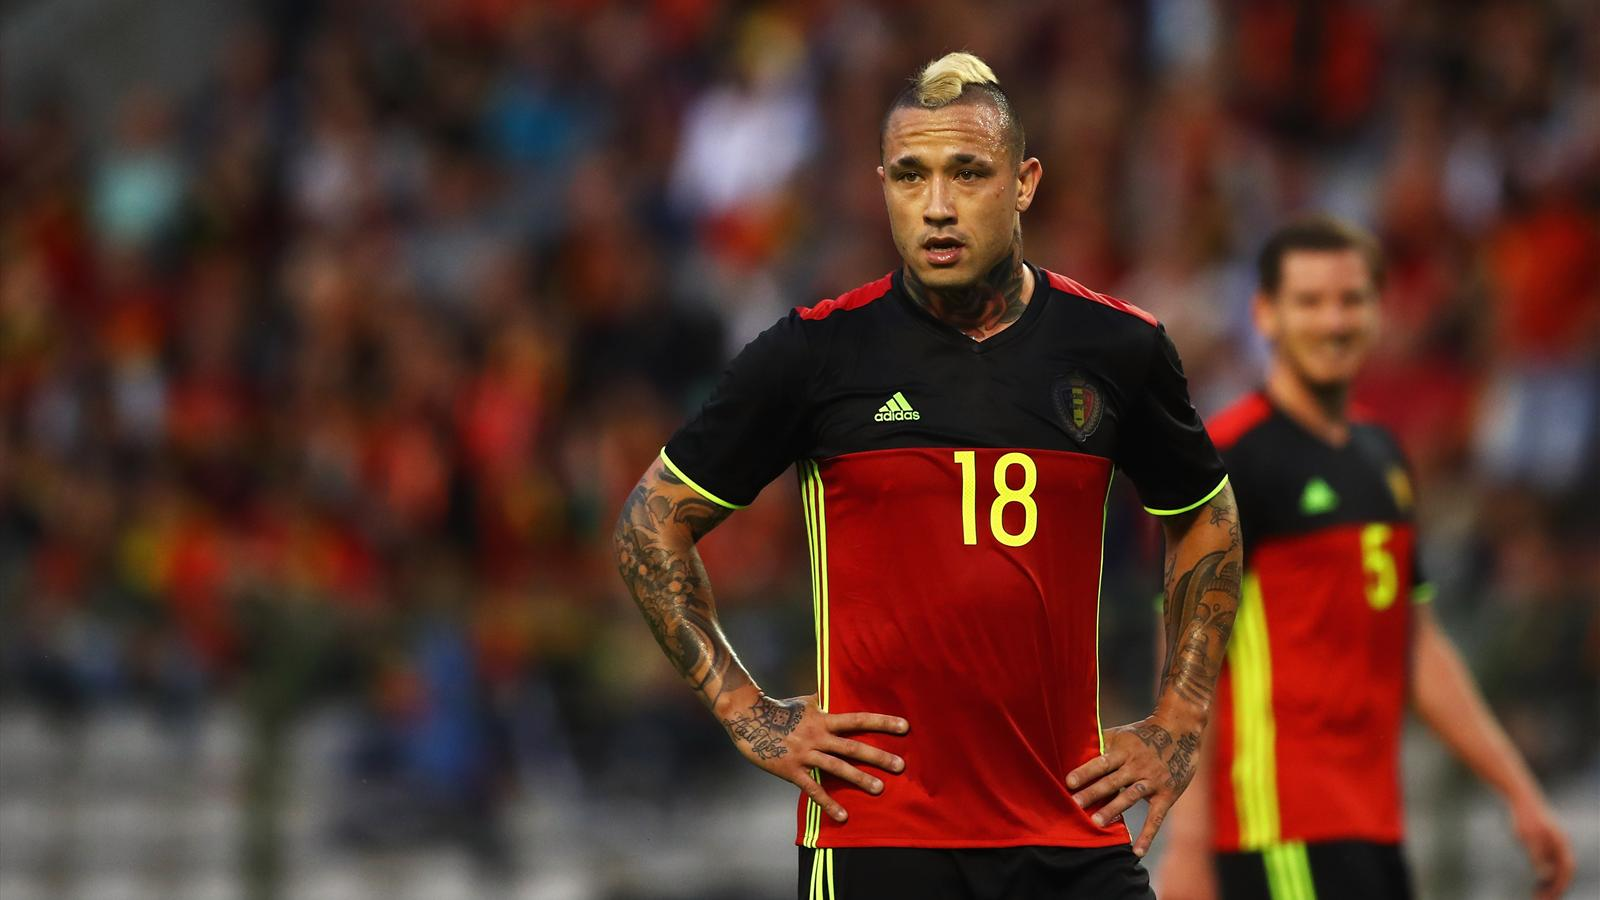 ef134765c59 AS Roma s Radja Nainggolan left out of Belgium World Cup squad ...